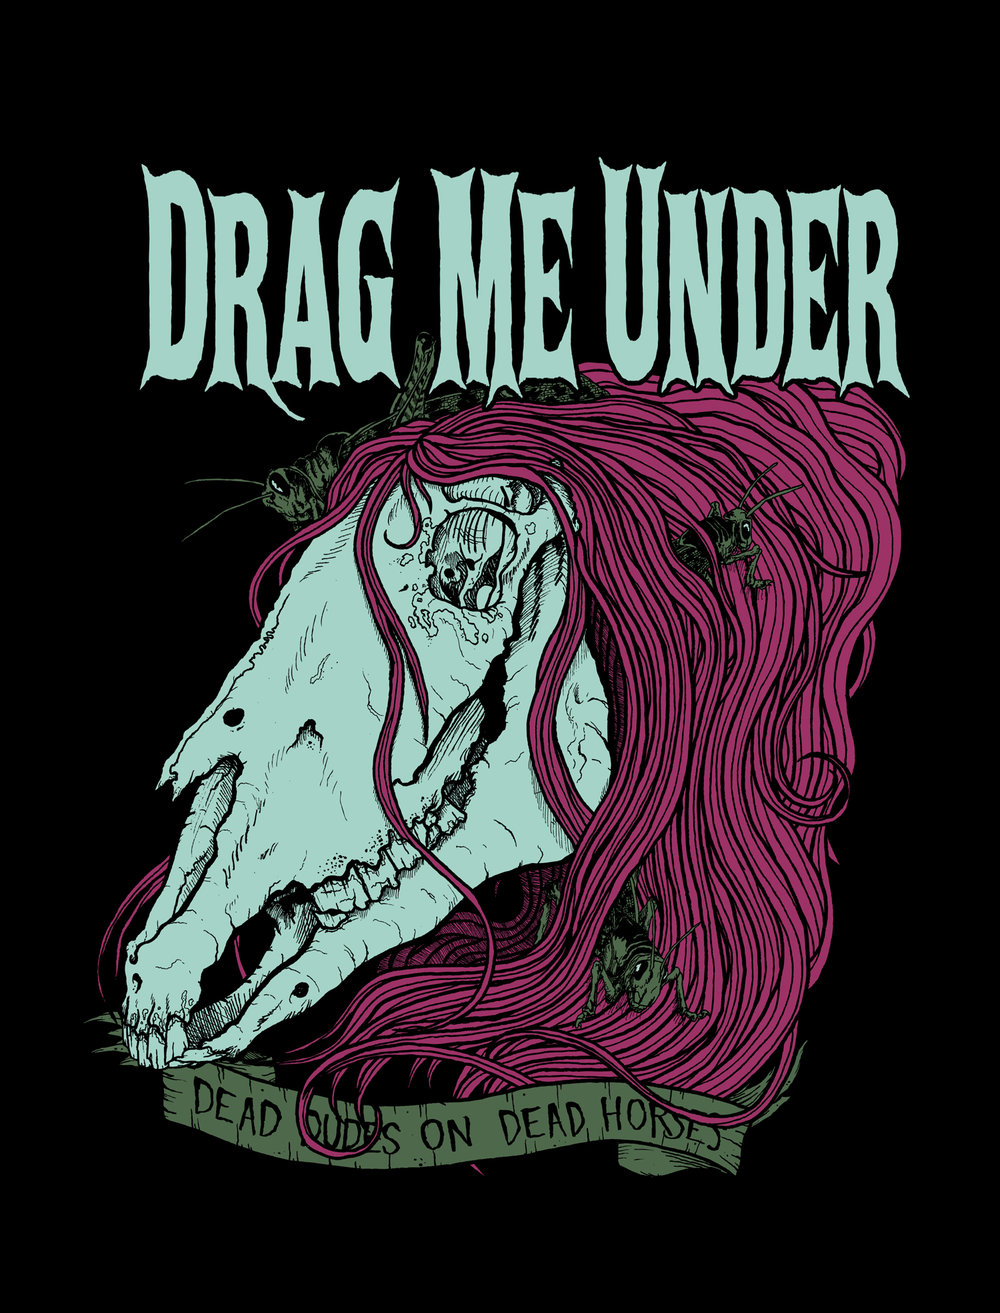 Shirt design for Drag Me Under